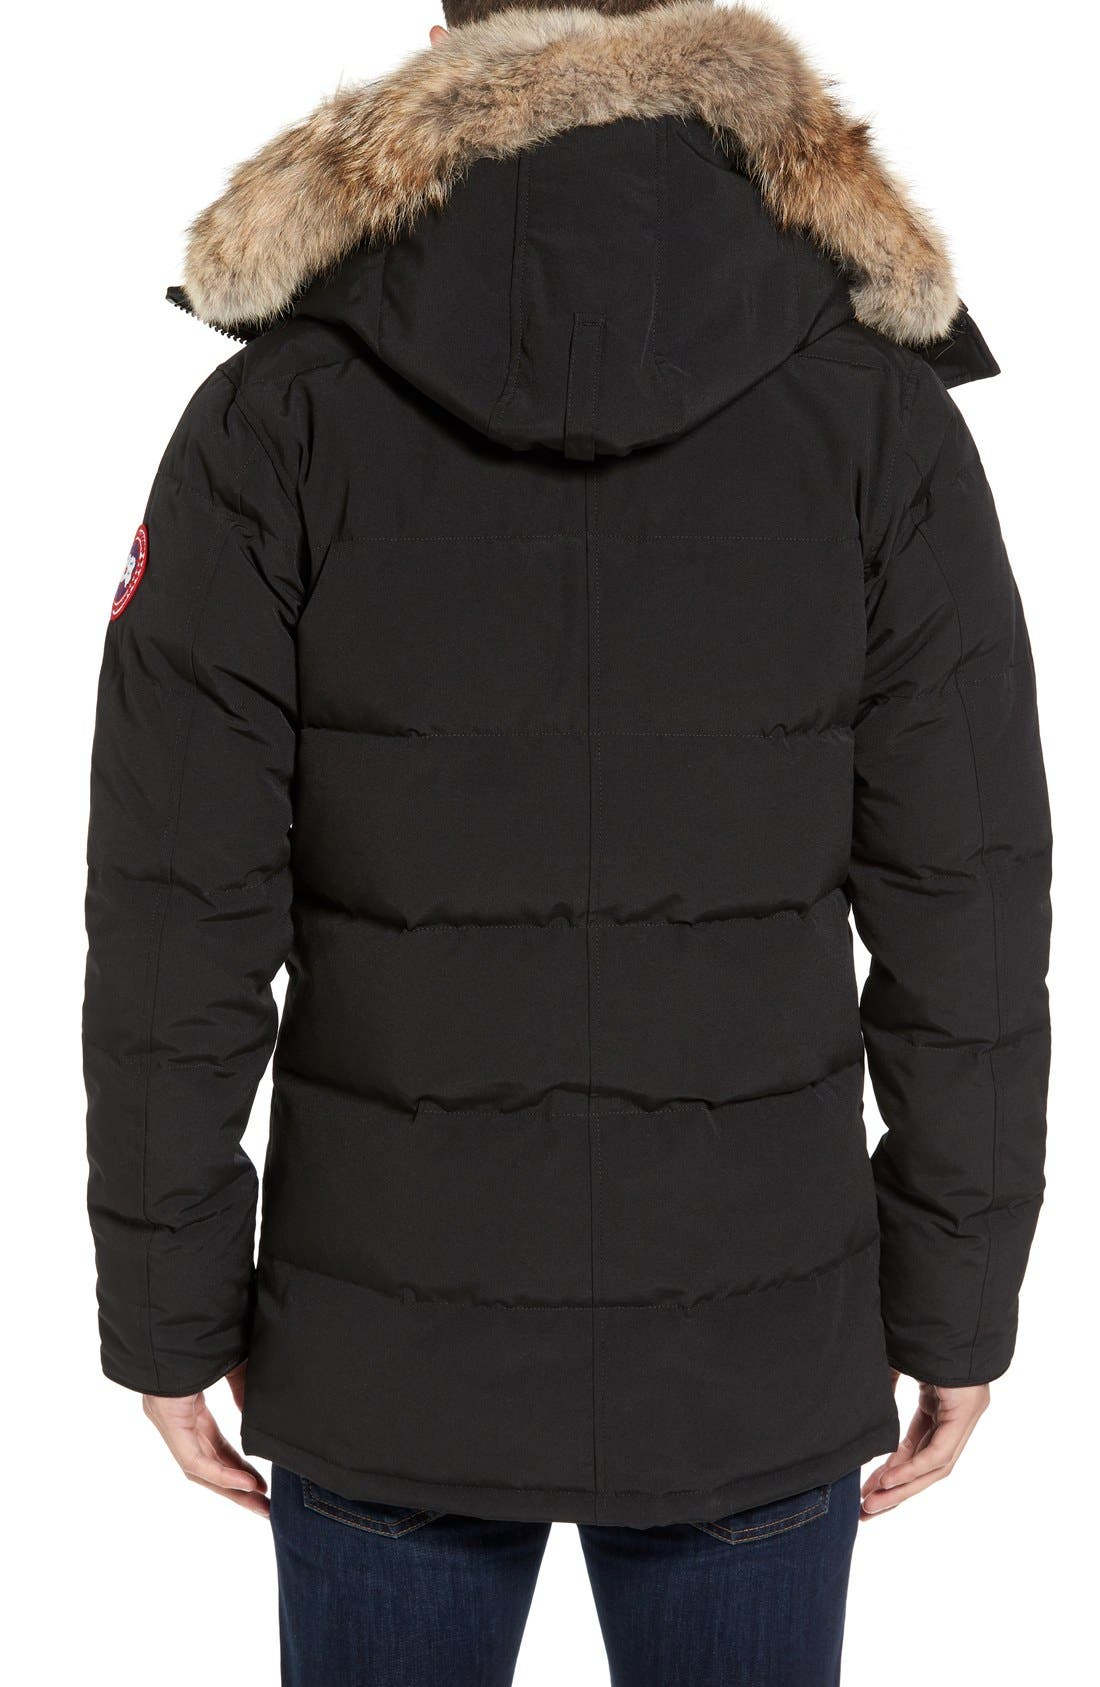 'Carson' Slim Fit Hooded Packable Parka with Genuine Coyote Fur Trim,                             Alternate thumbnail 7, color,                             BLACK